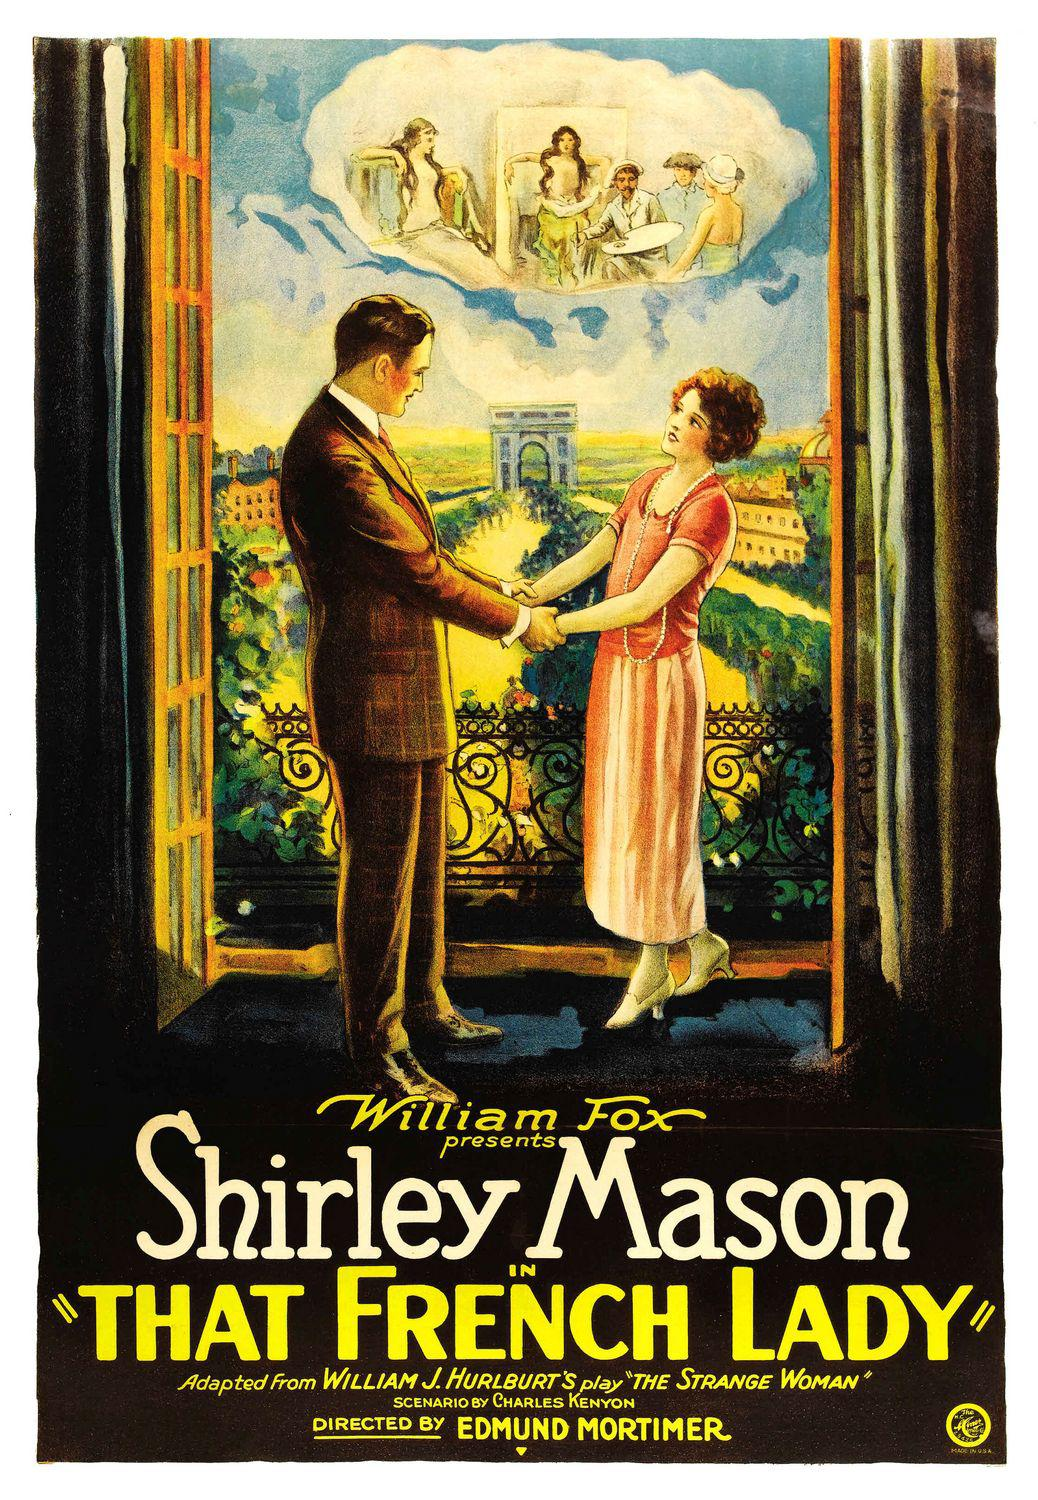 That French Lady - Shirley Mason